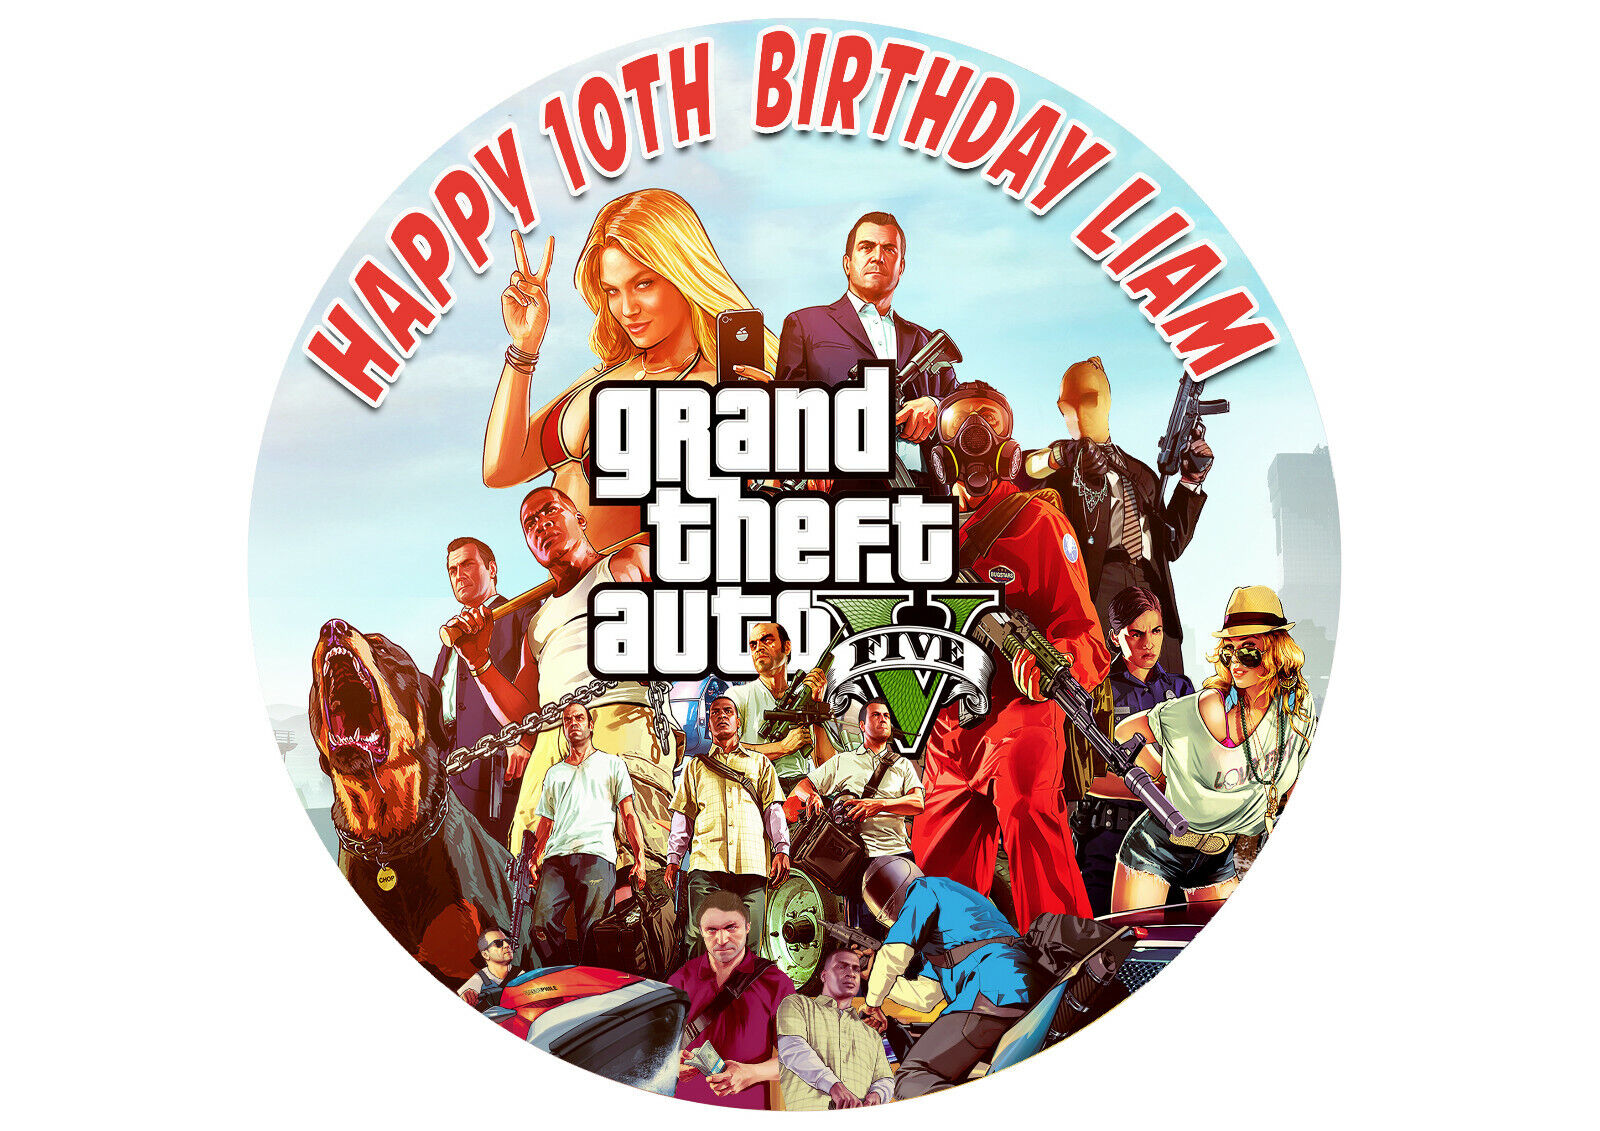 Computer Games - GTA Grand theft Auto 5 computer game birthday Party Cake Decoration icing sheet